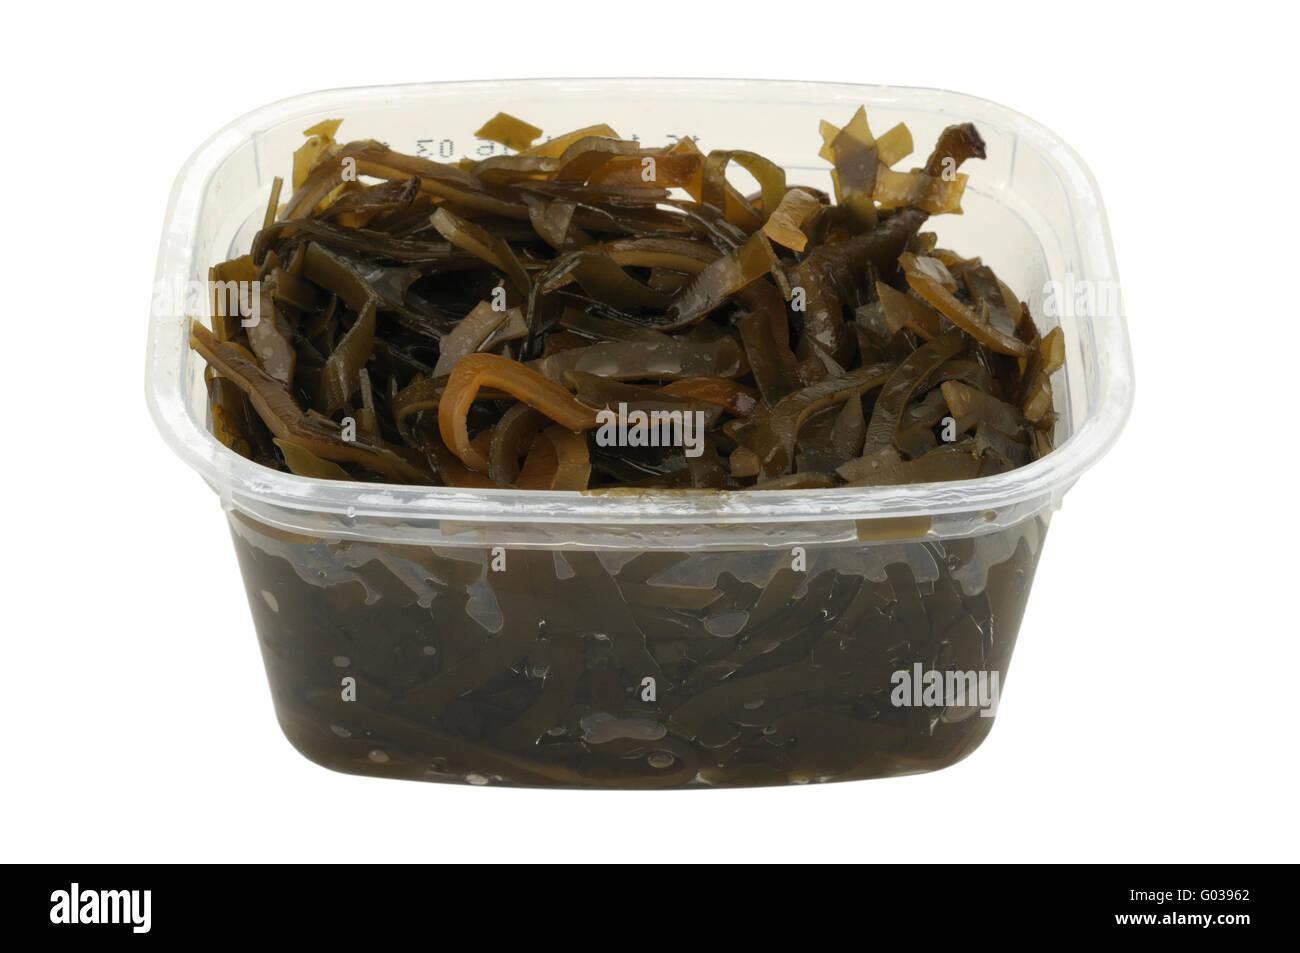 kelp salad in a plastic pot isolated on white back - Stock Image